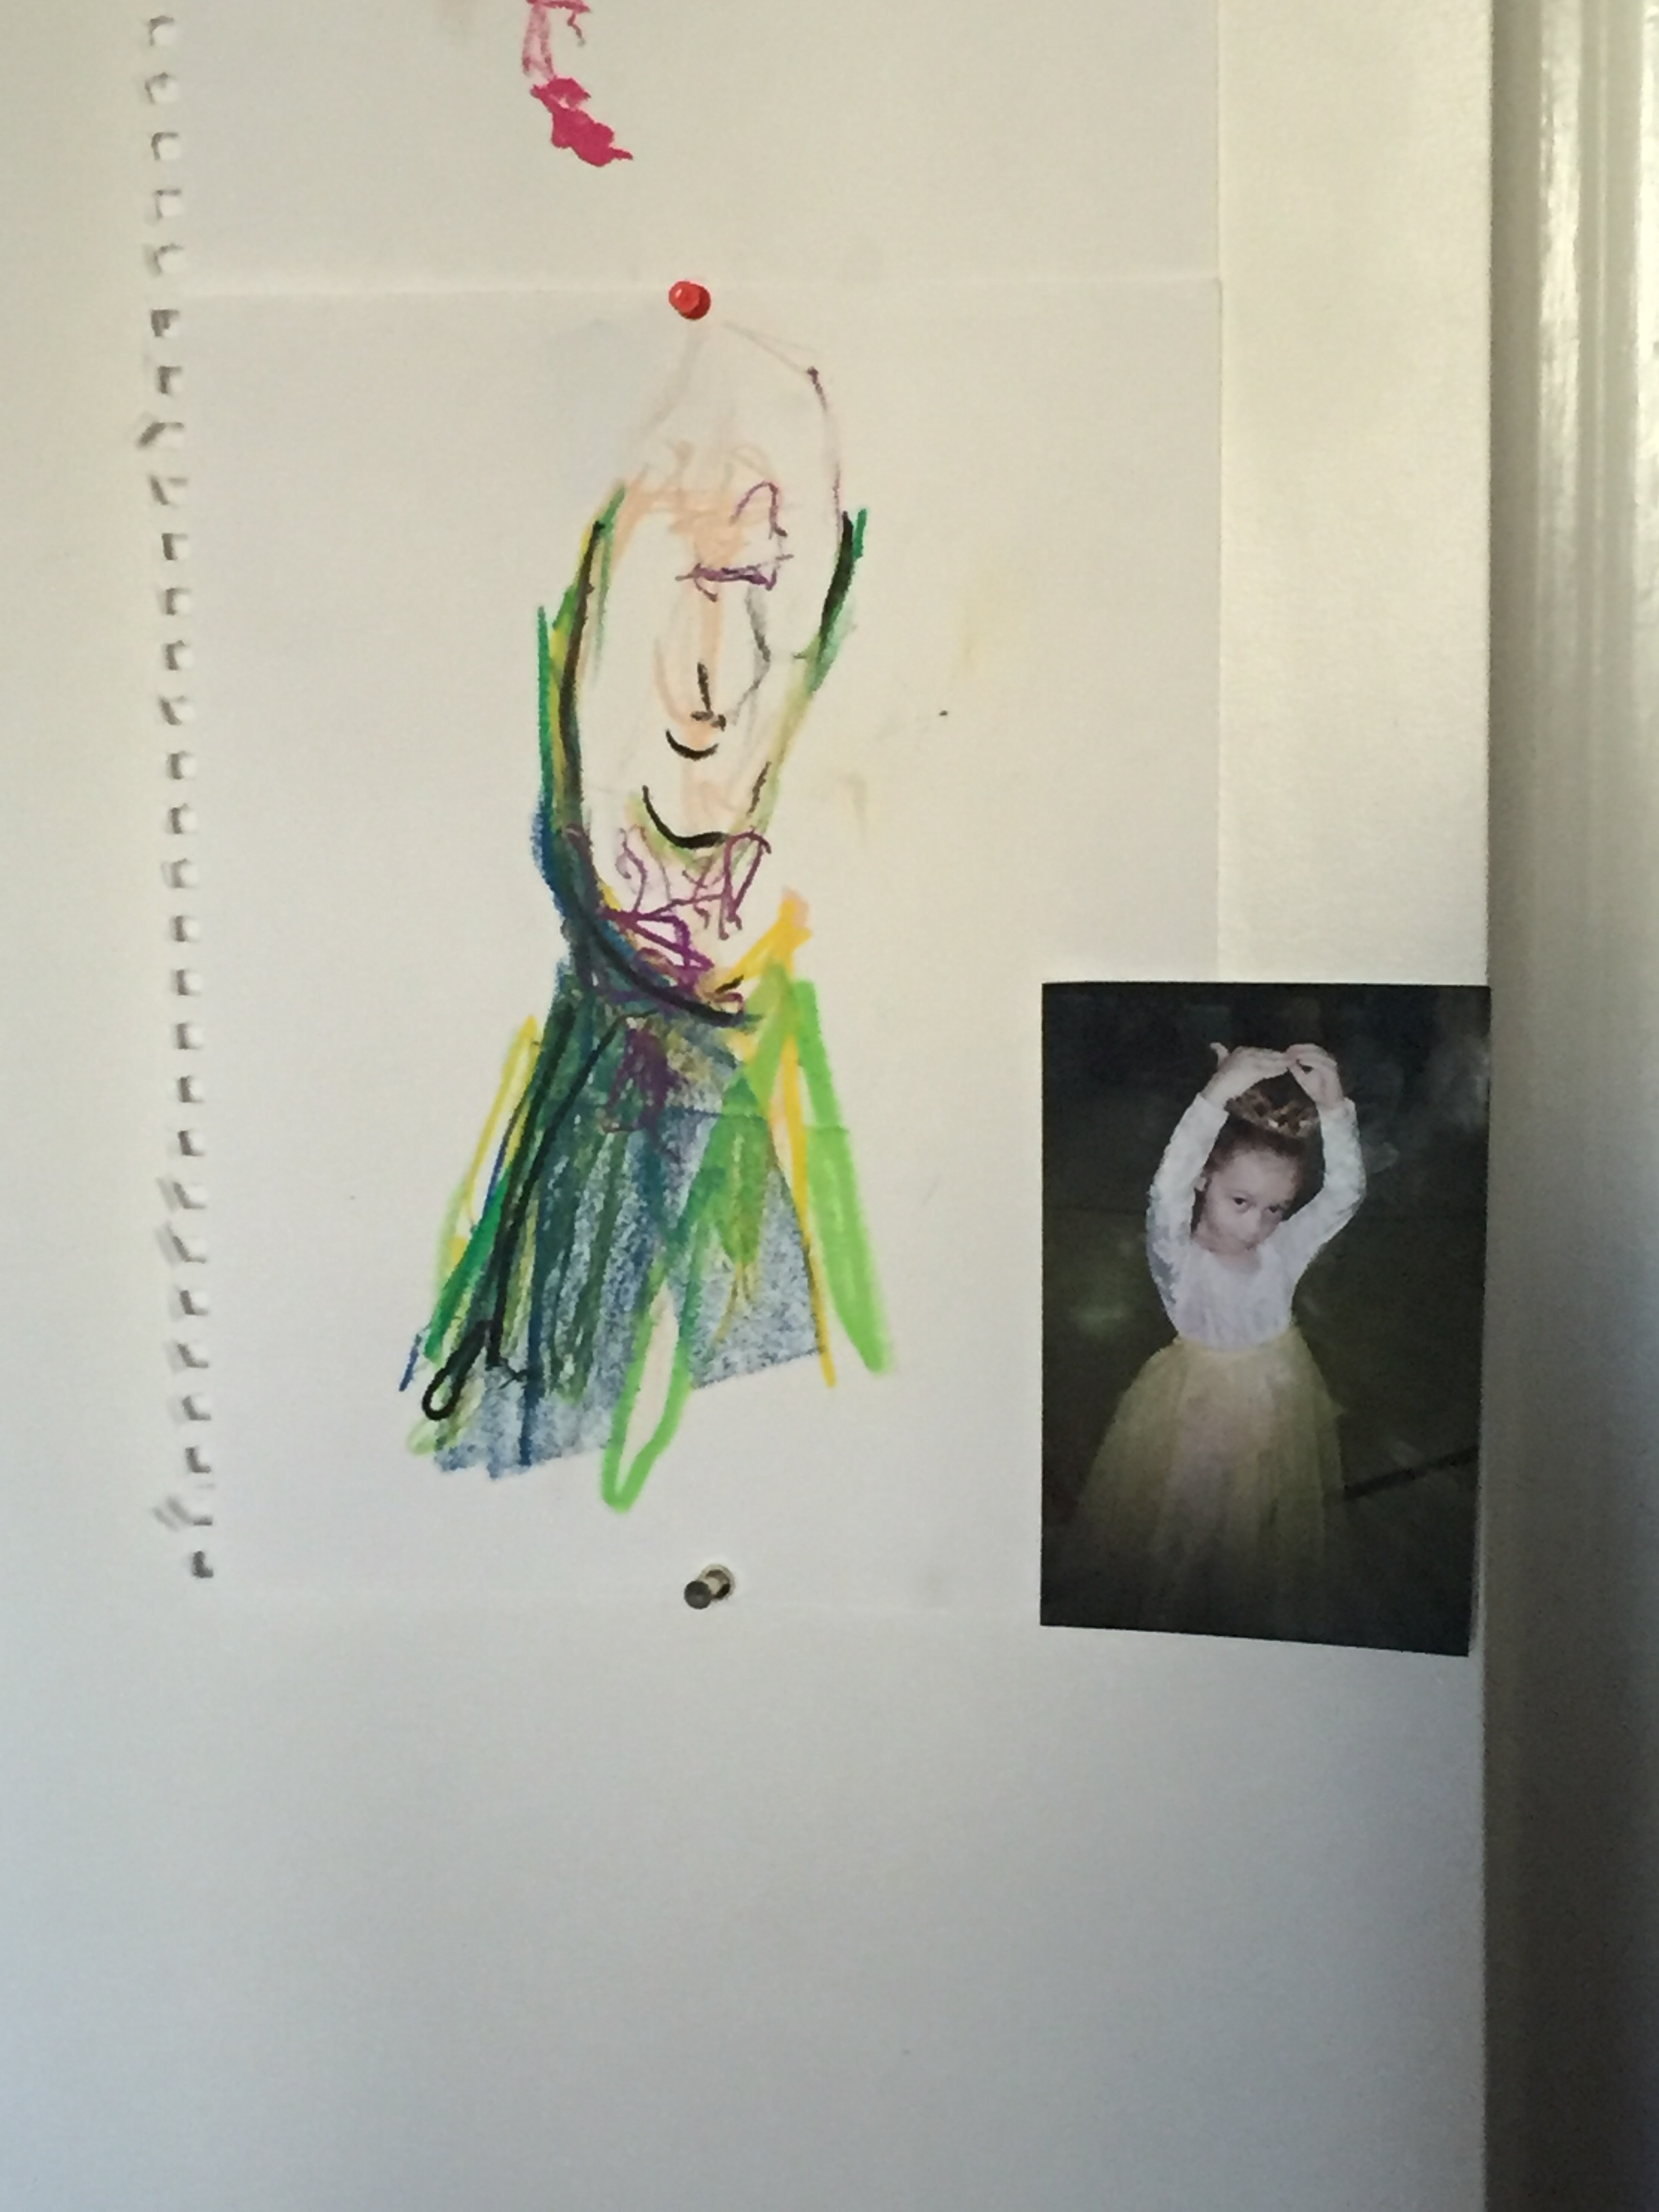 Photo and sketch of Karrie's sister.